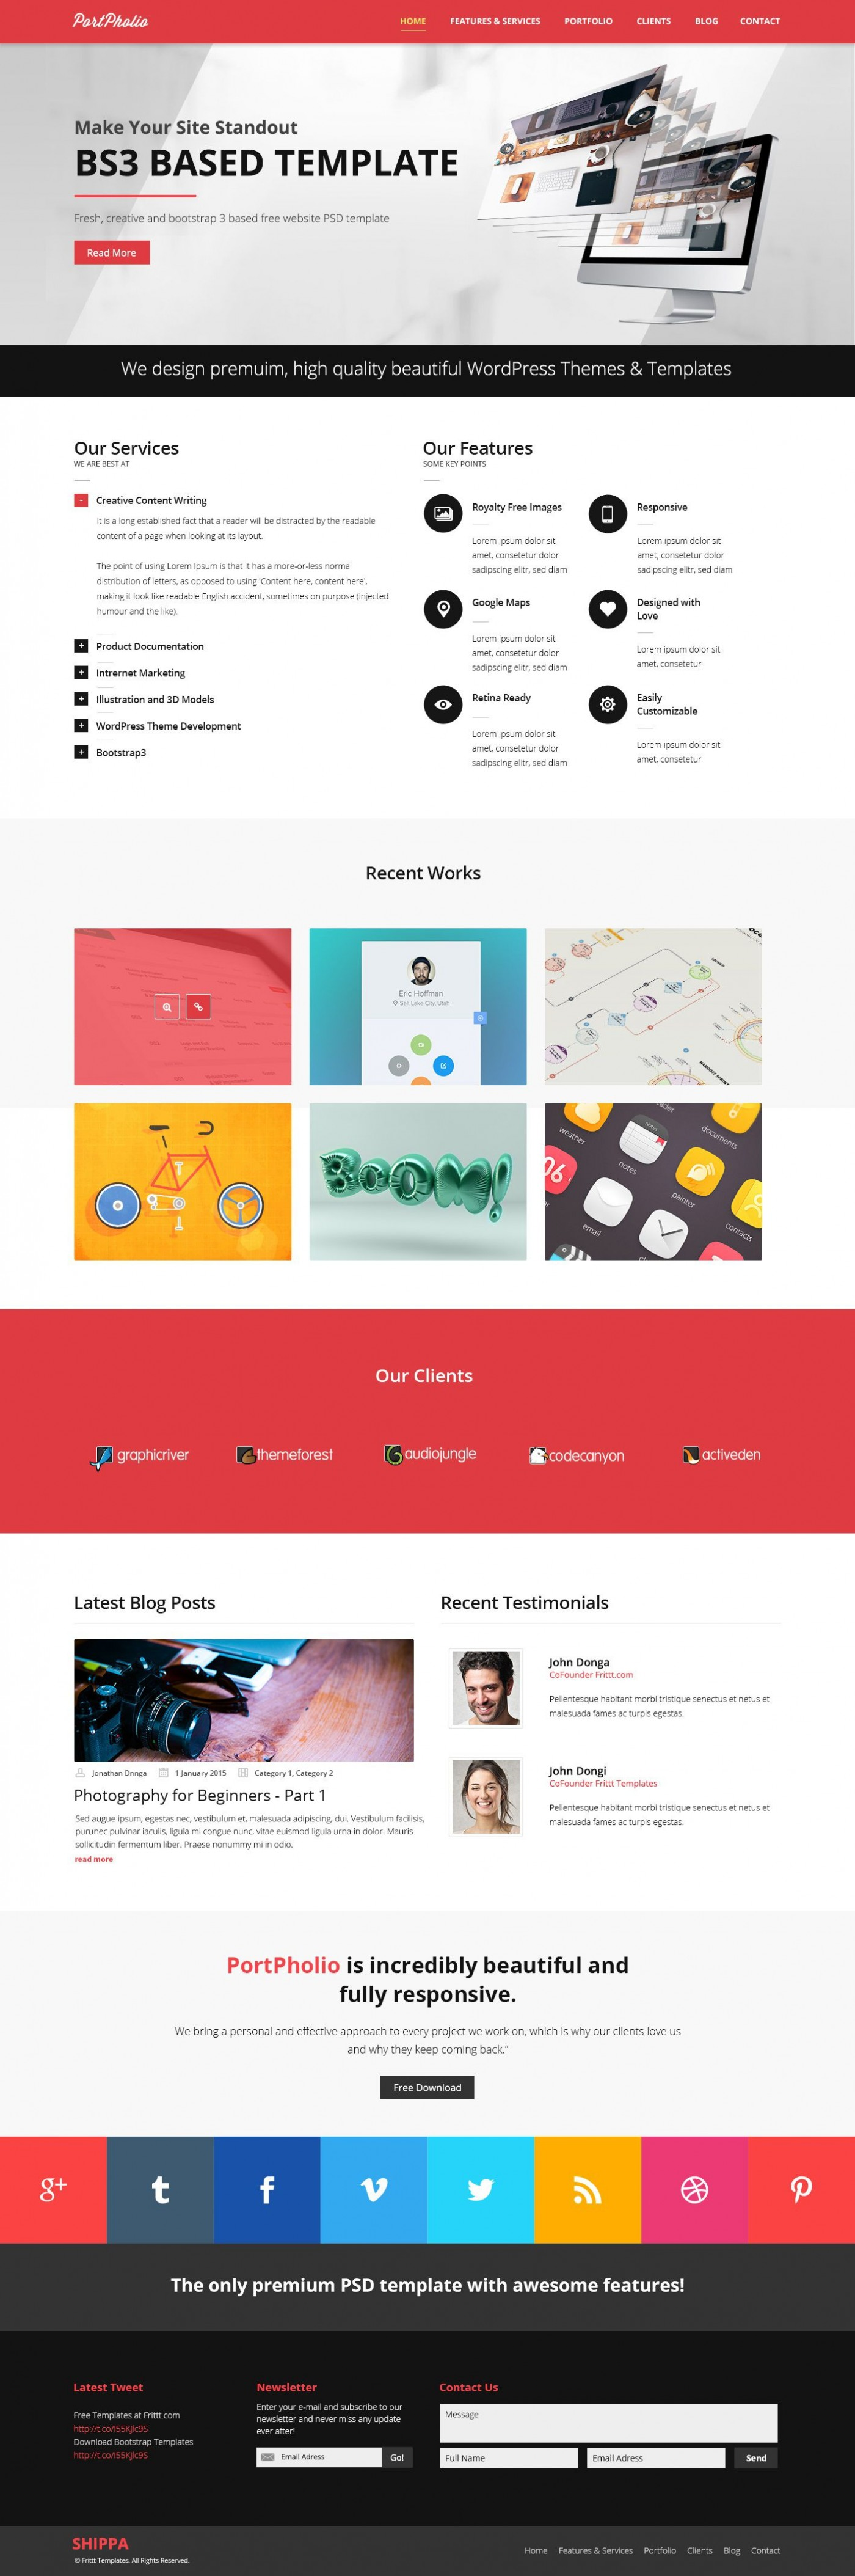 003 Rare One Page Website Template Psd Free Download Sample 1400